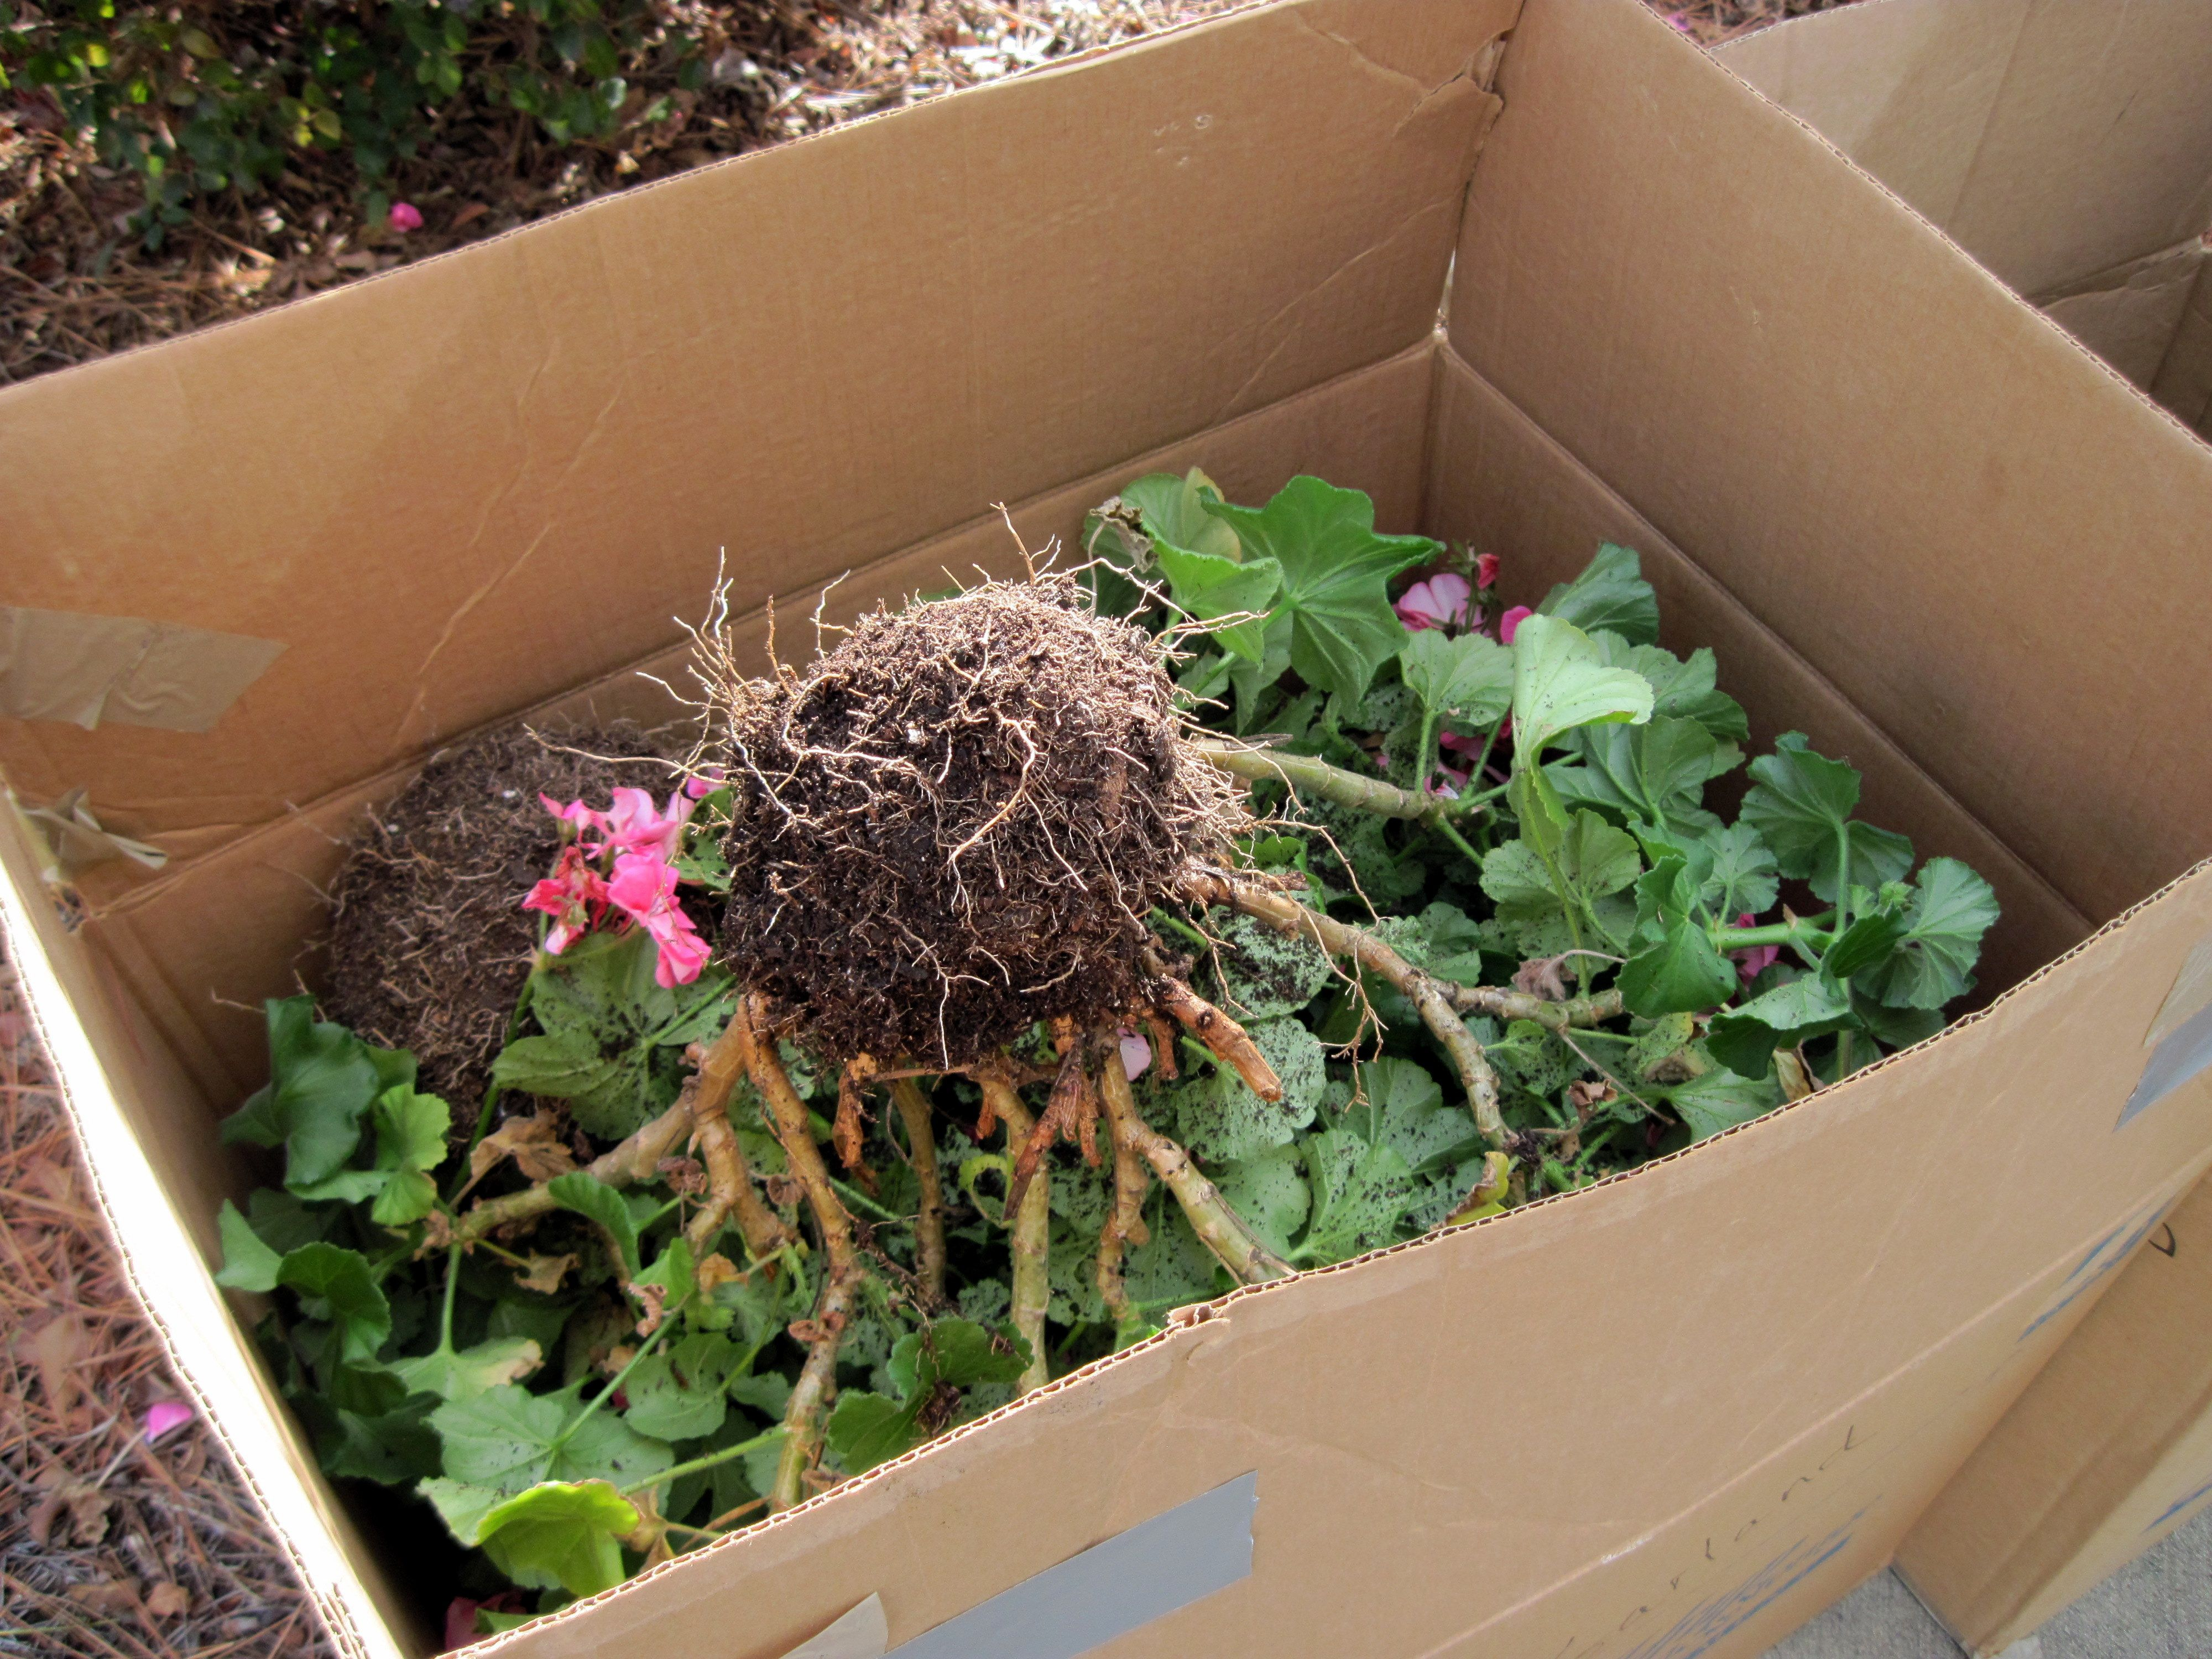 keep your geraniums place upside down in cardboard box or paper